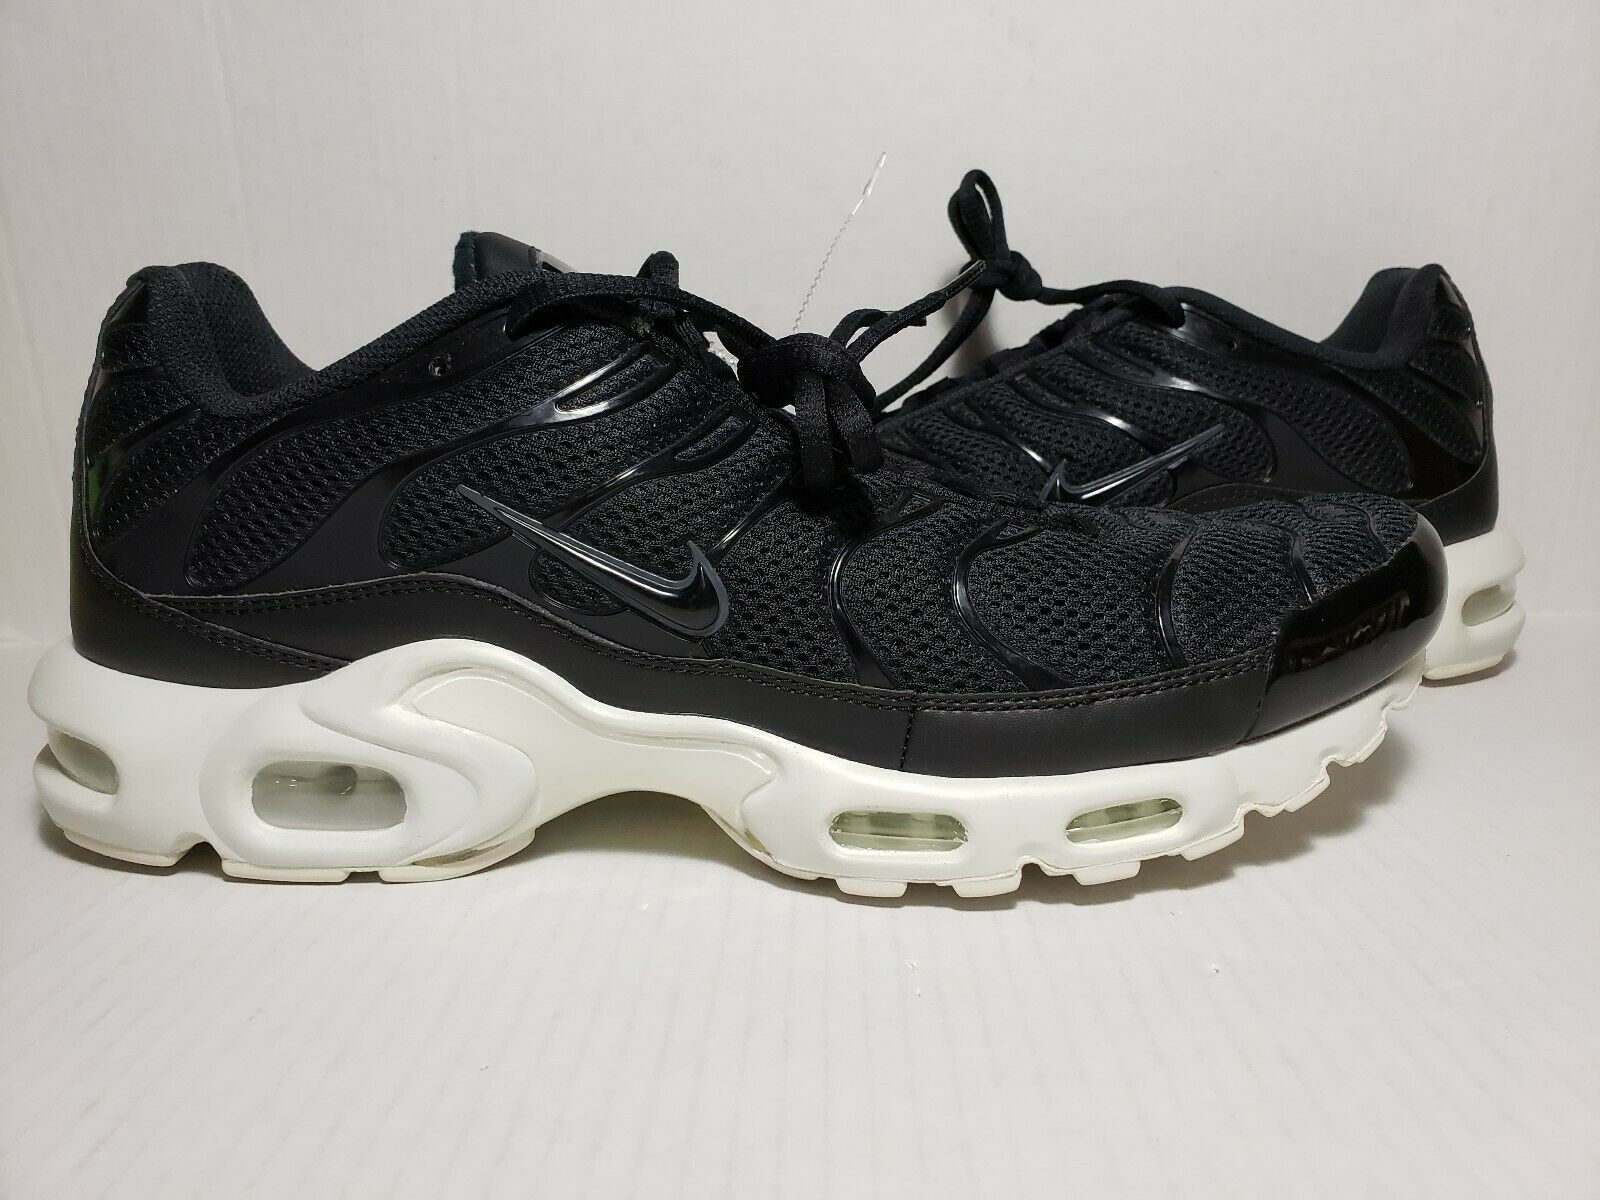 a2061a62d Nike Air Max Plus BR TN Tuned Running Running Running shoes Black Summit  White 898014-